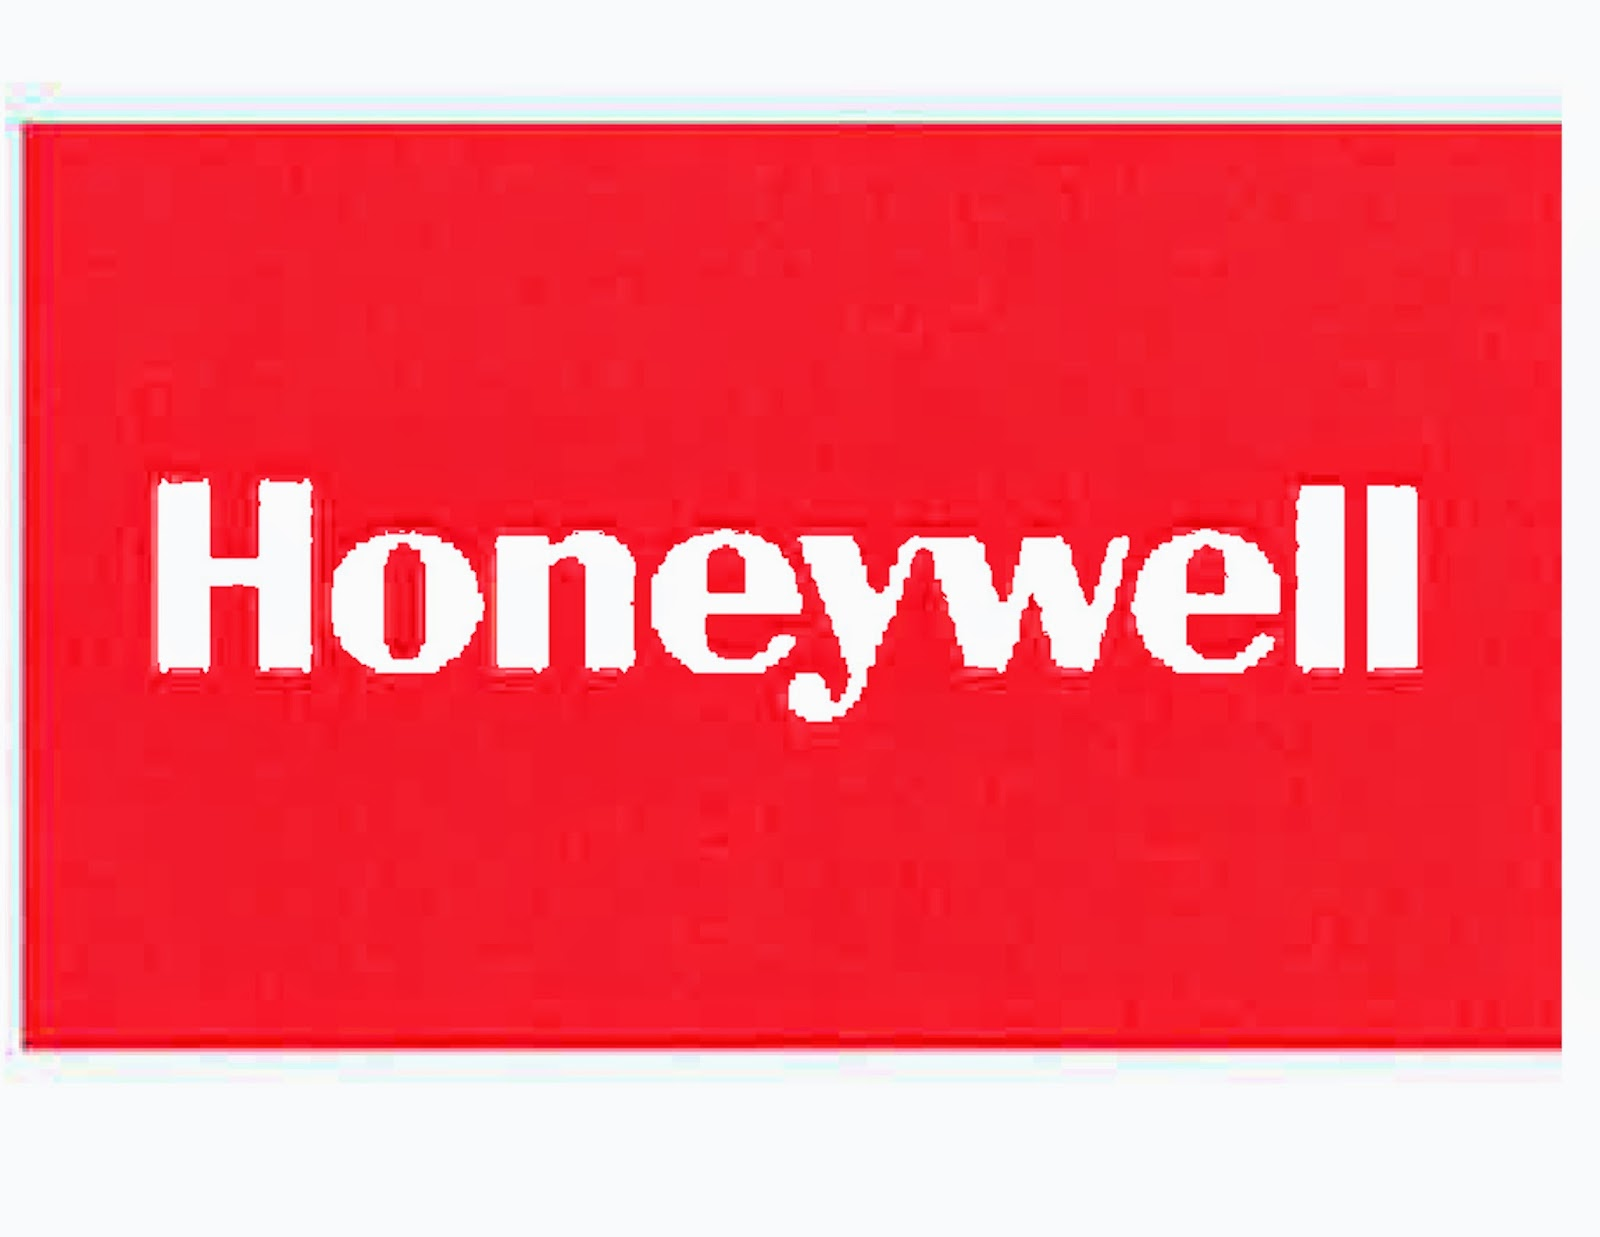 Honeywell Job Opening For Exp As Business Data Analyst (Apply Online)